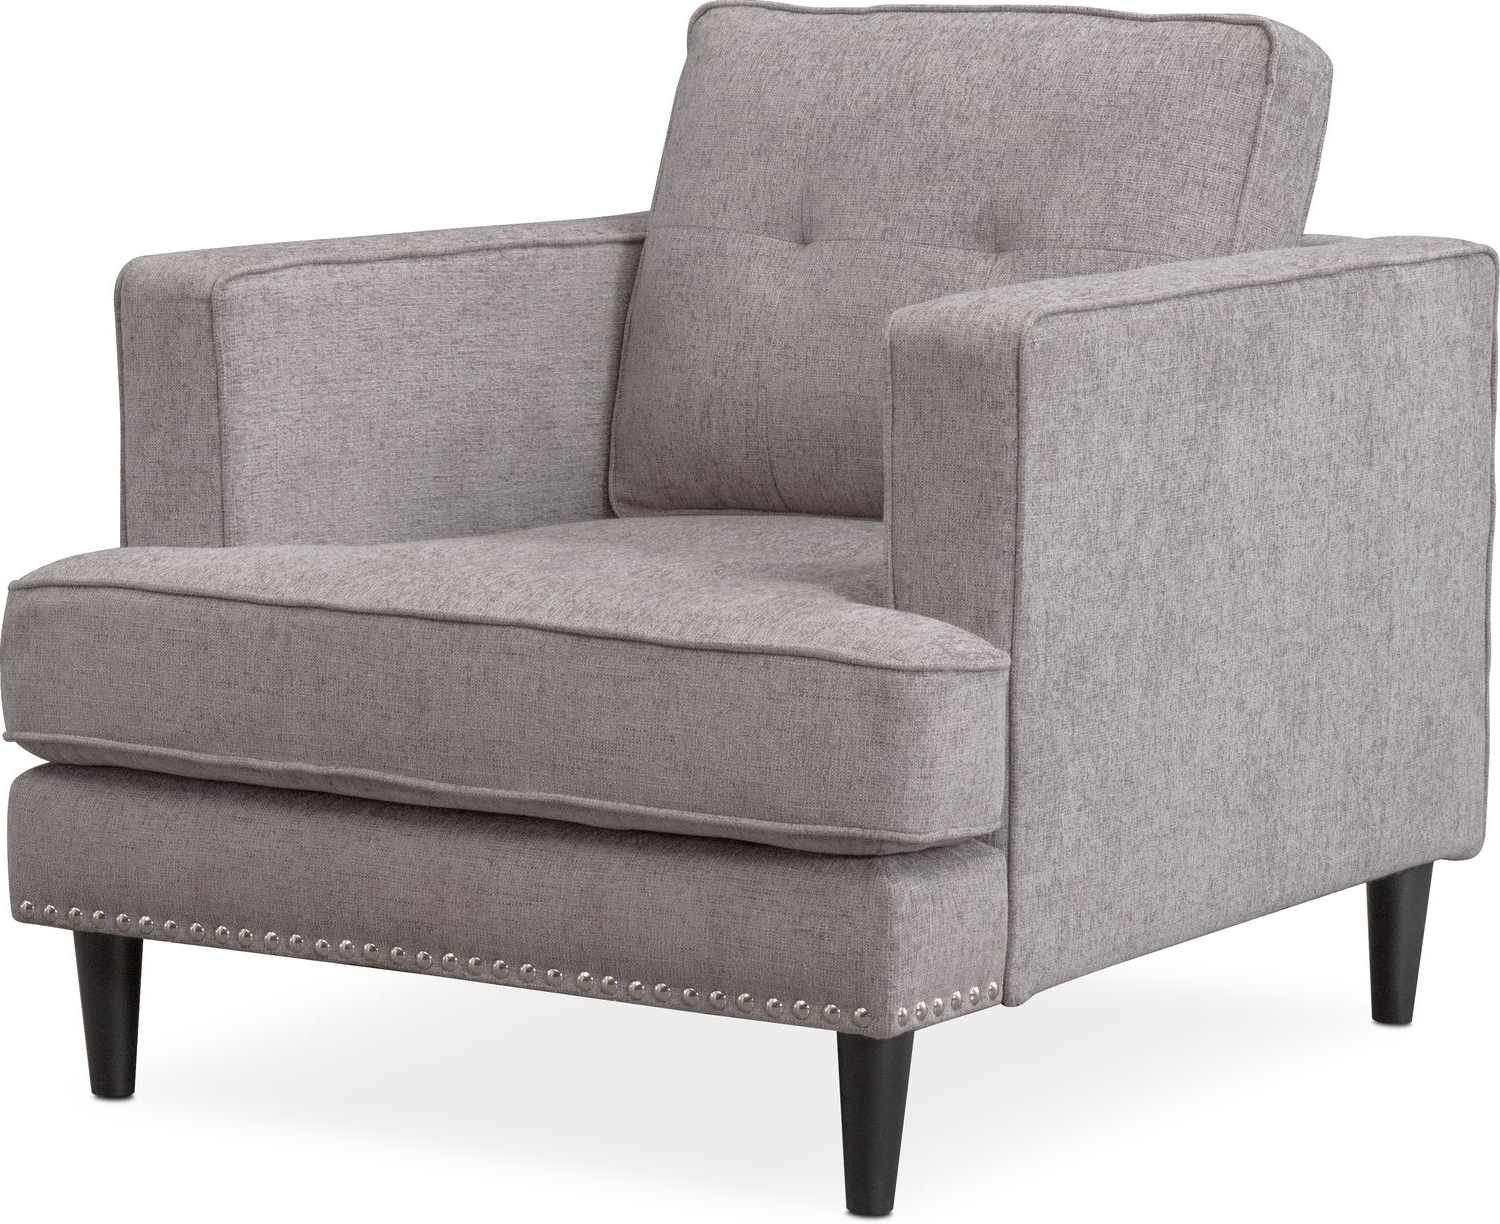 2018 Parker Sofa, Chair And Ottoman Set (View 2 of 20)